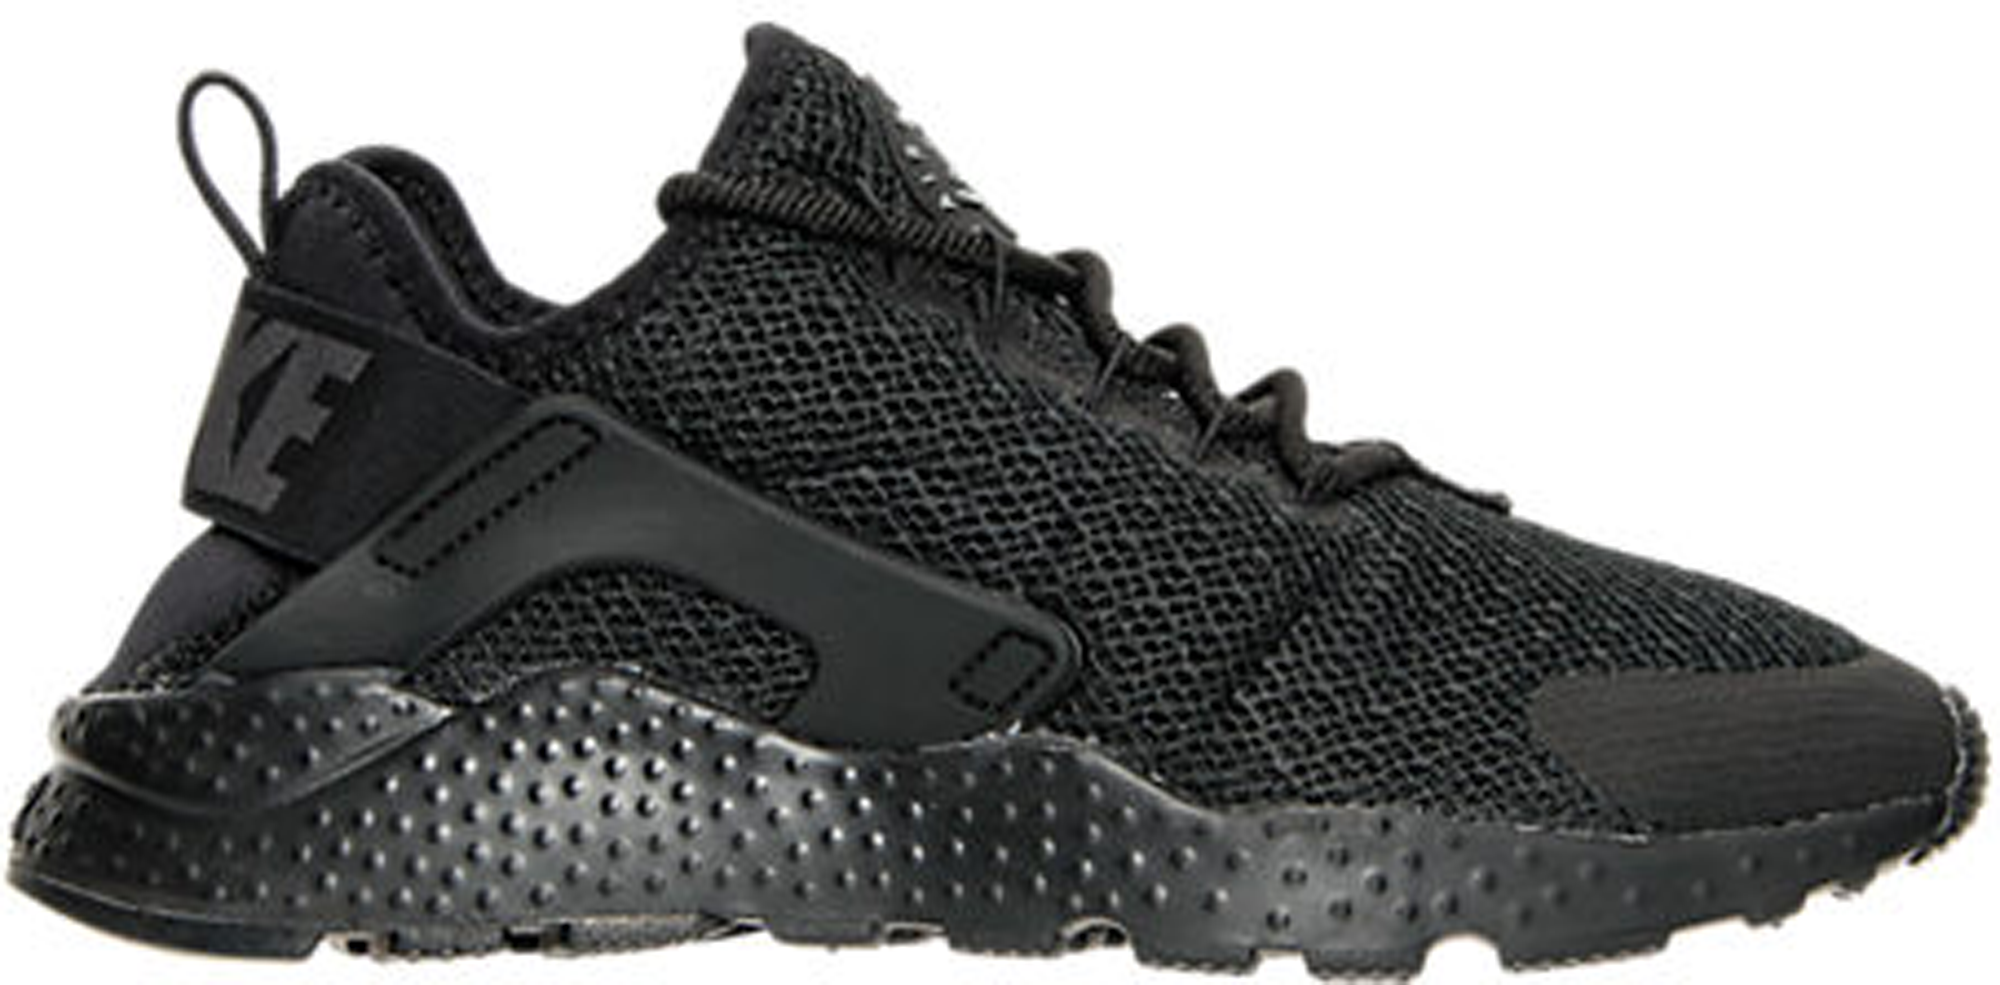 nike air huarache womens shoe; air huarache run ultra black (w)